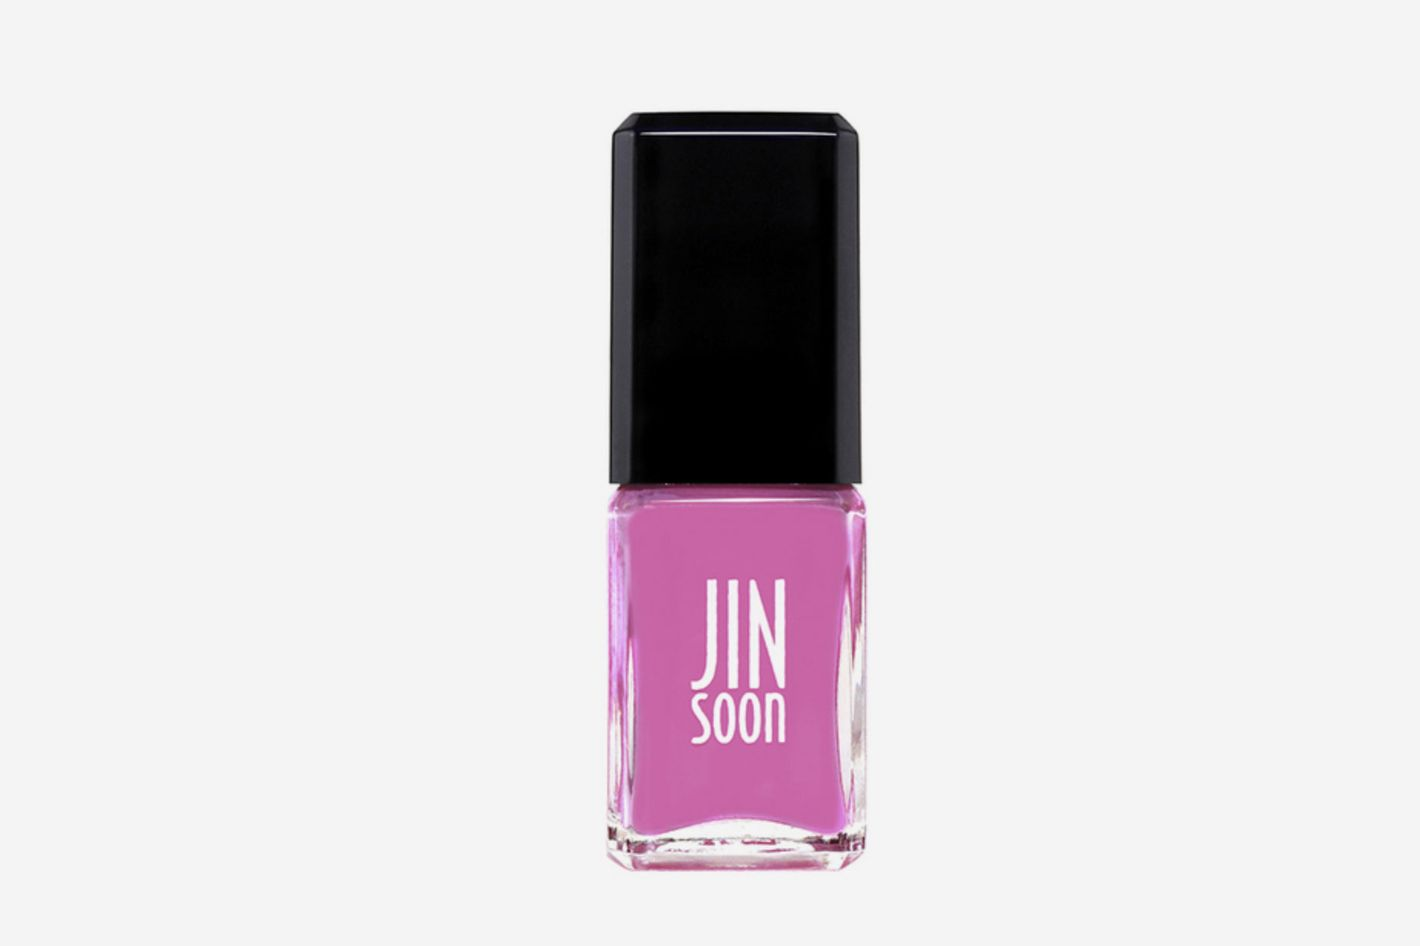 Jinsoon Love Nail Polish in Persian Pink